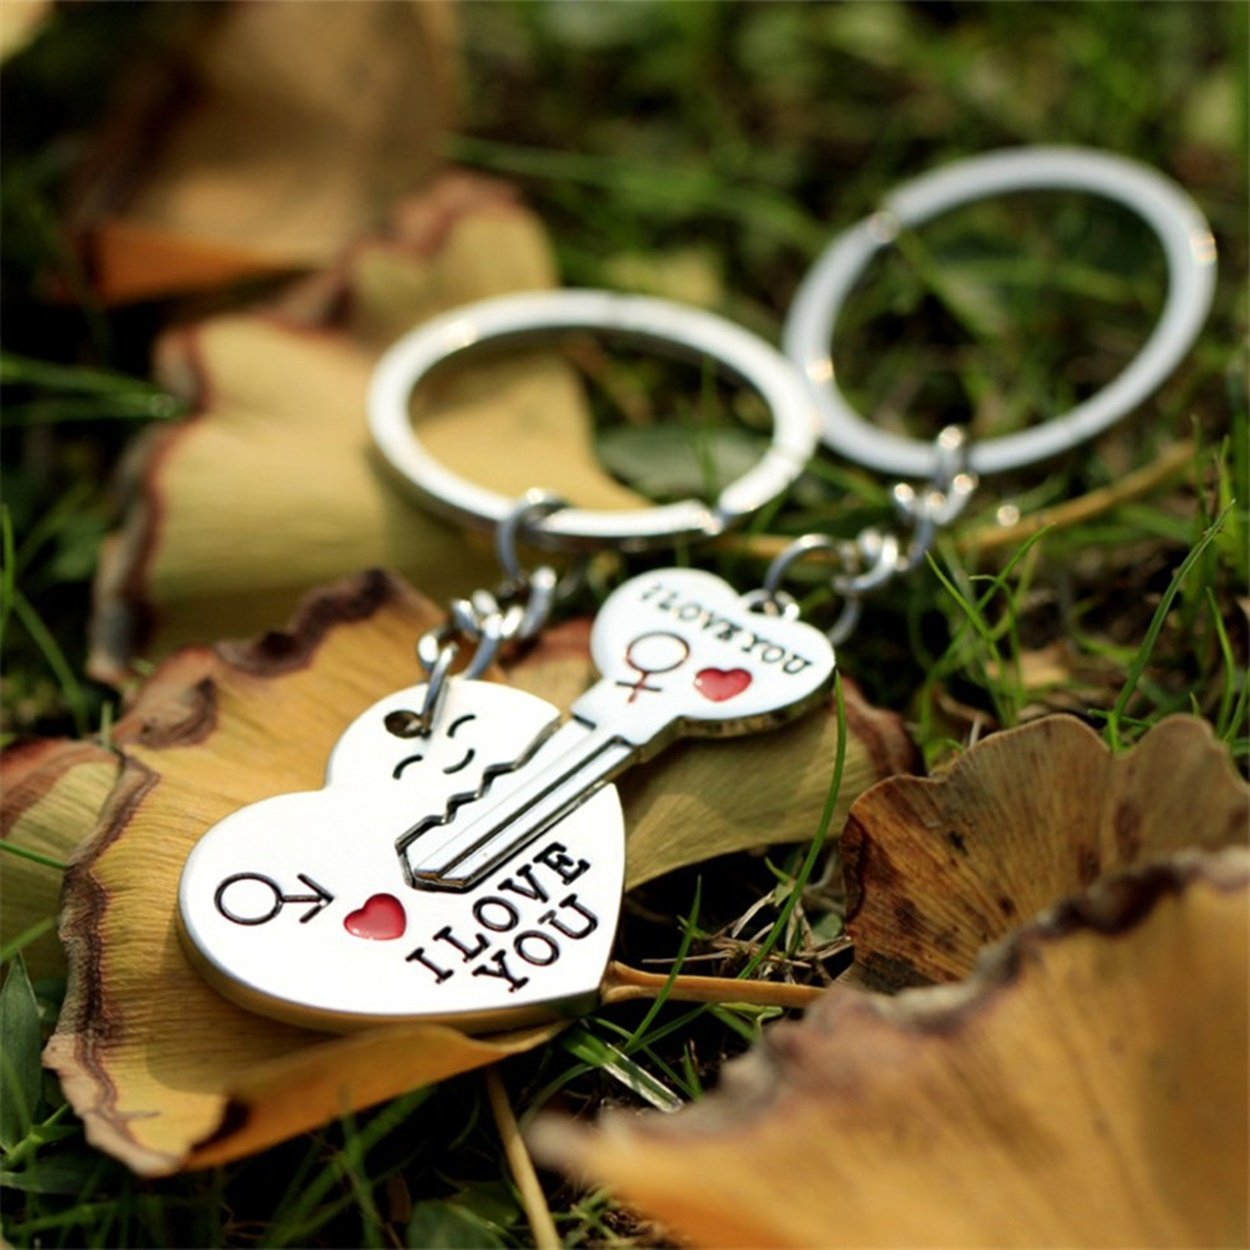 1 Set (2 Pcs/Set) I Love You Lover Arrow Girlfriend Boyfriend Keychains Pendant Women Heart Wrist Wristlet Key Fob Zenith Popular Pocket Teenagers Bag Car Keyring